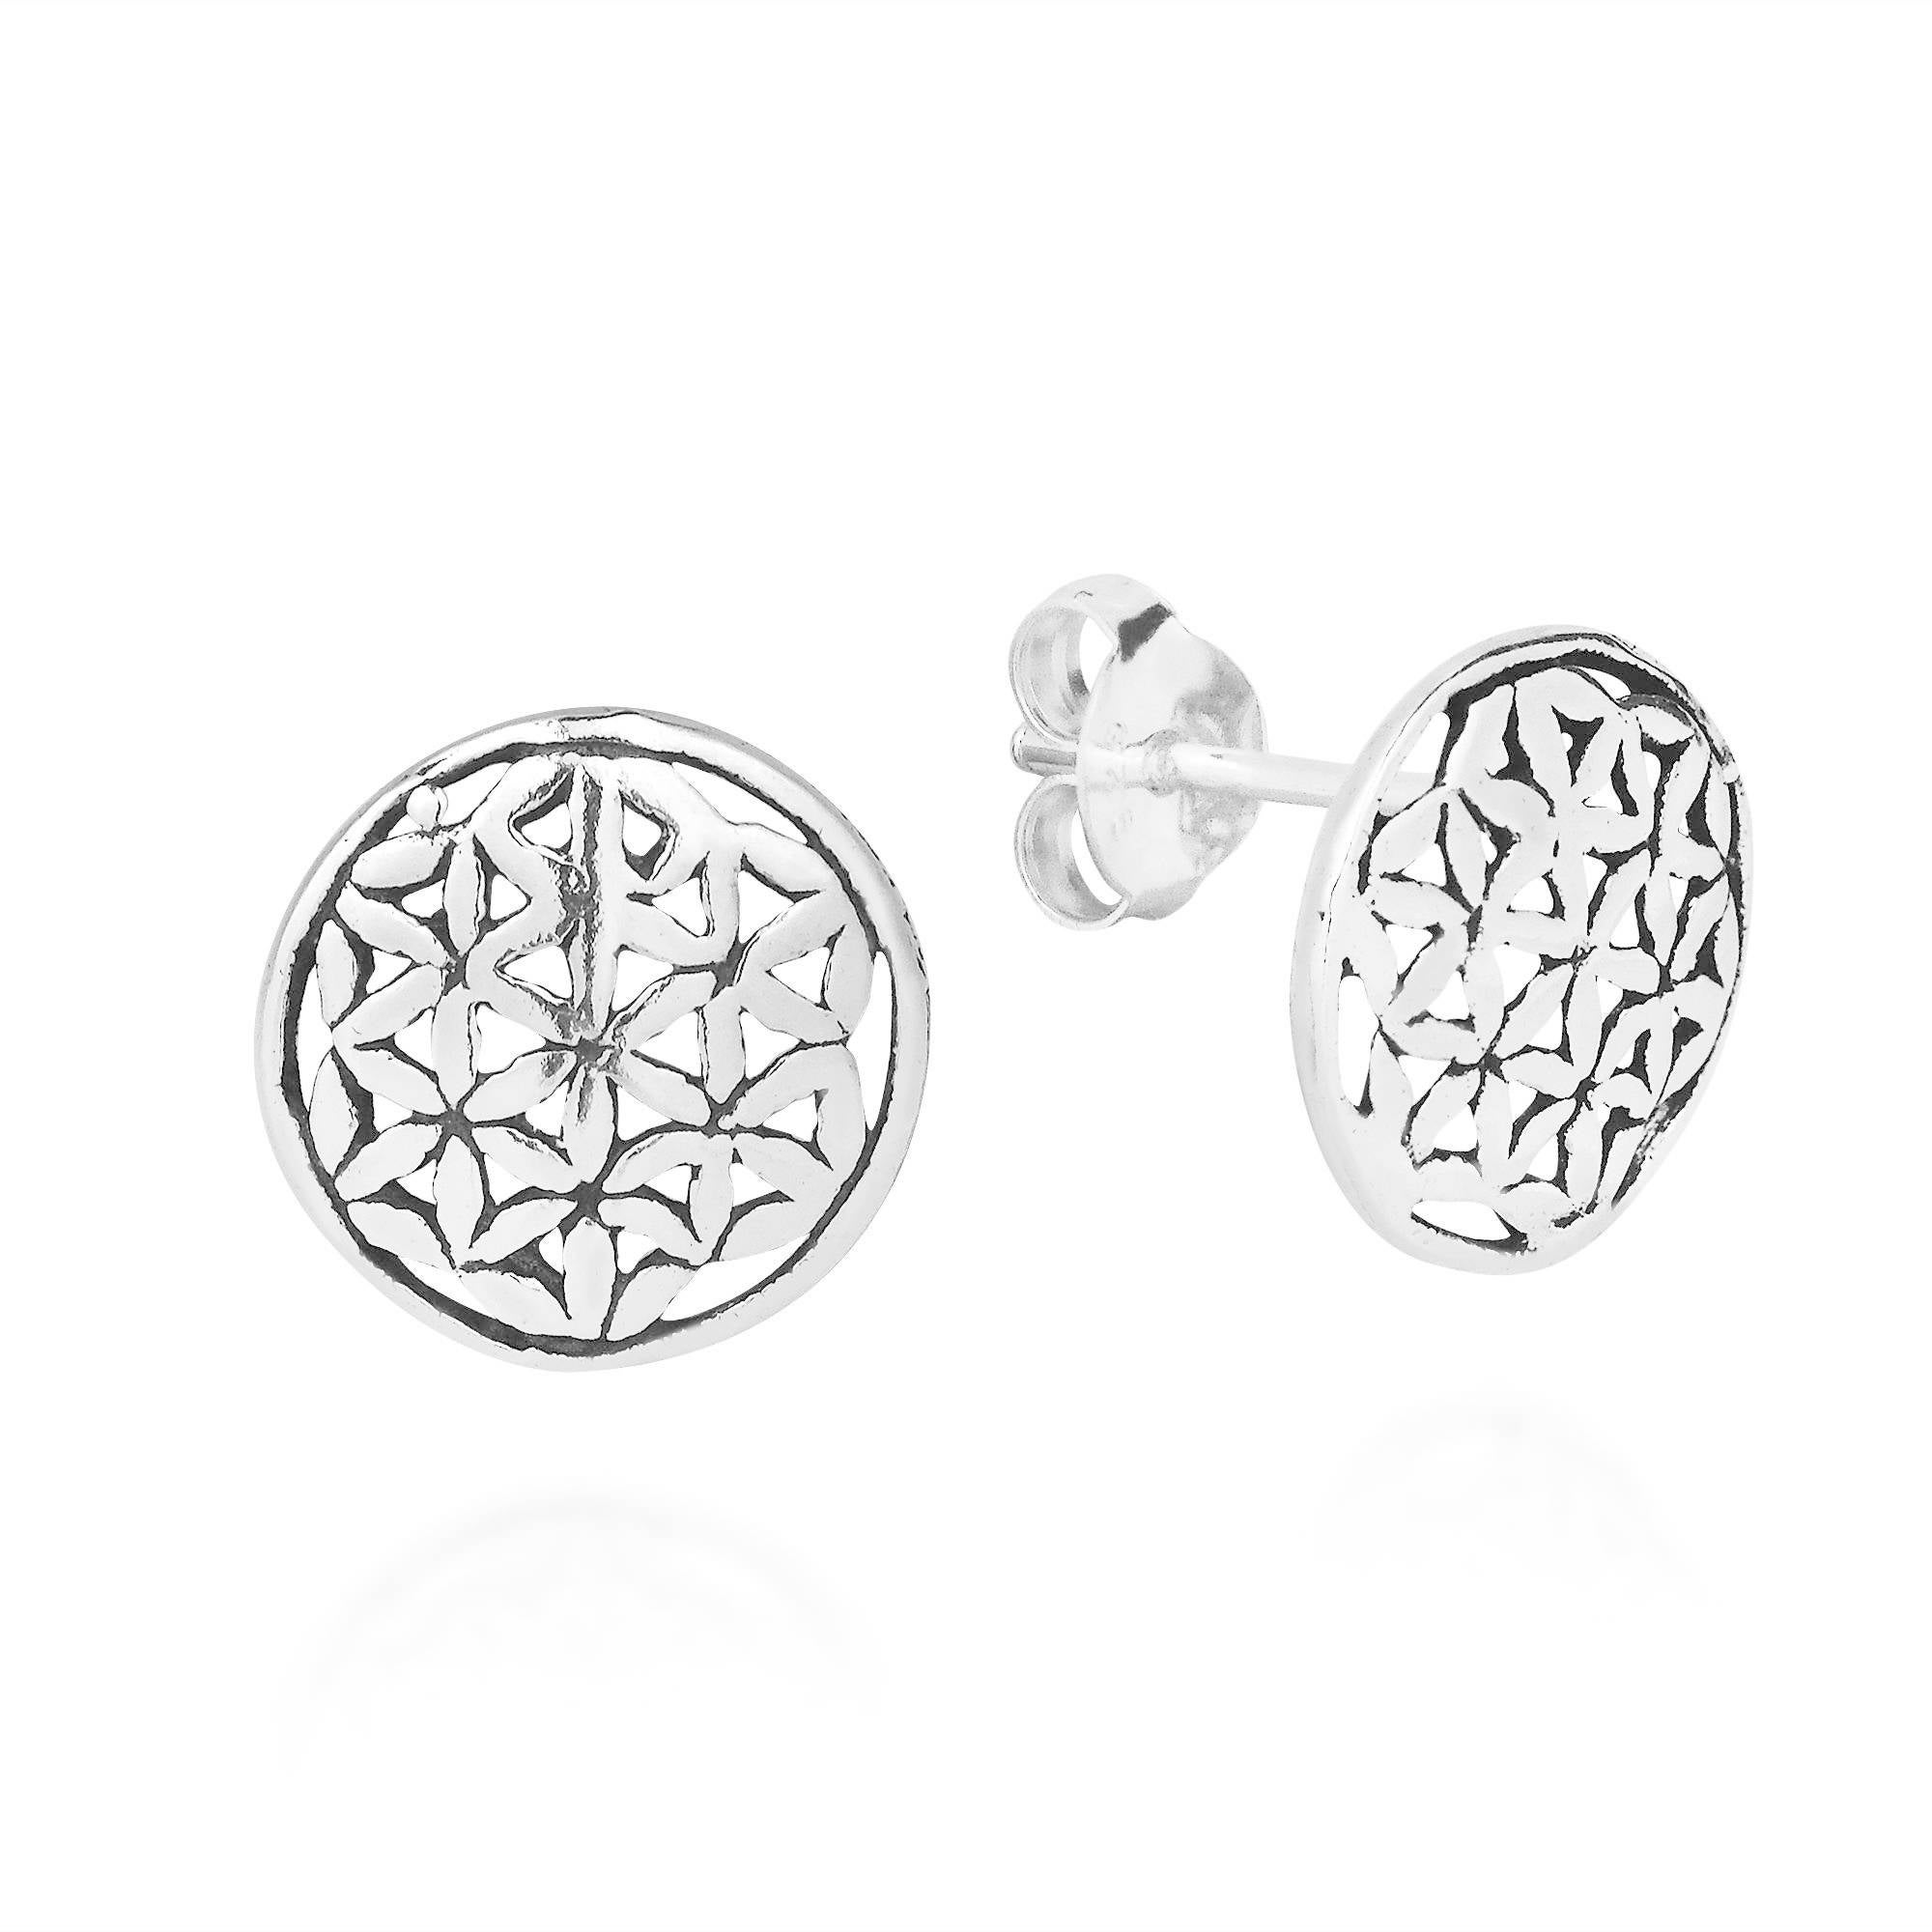 Handmade Interconnecting Lily Flower Of Life 925 Silver Stud Earrings Thailand On Free Shipping Orders Over 45